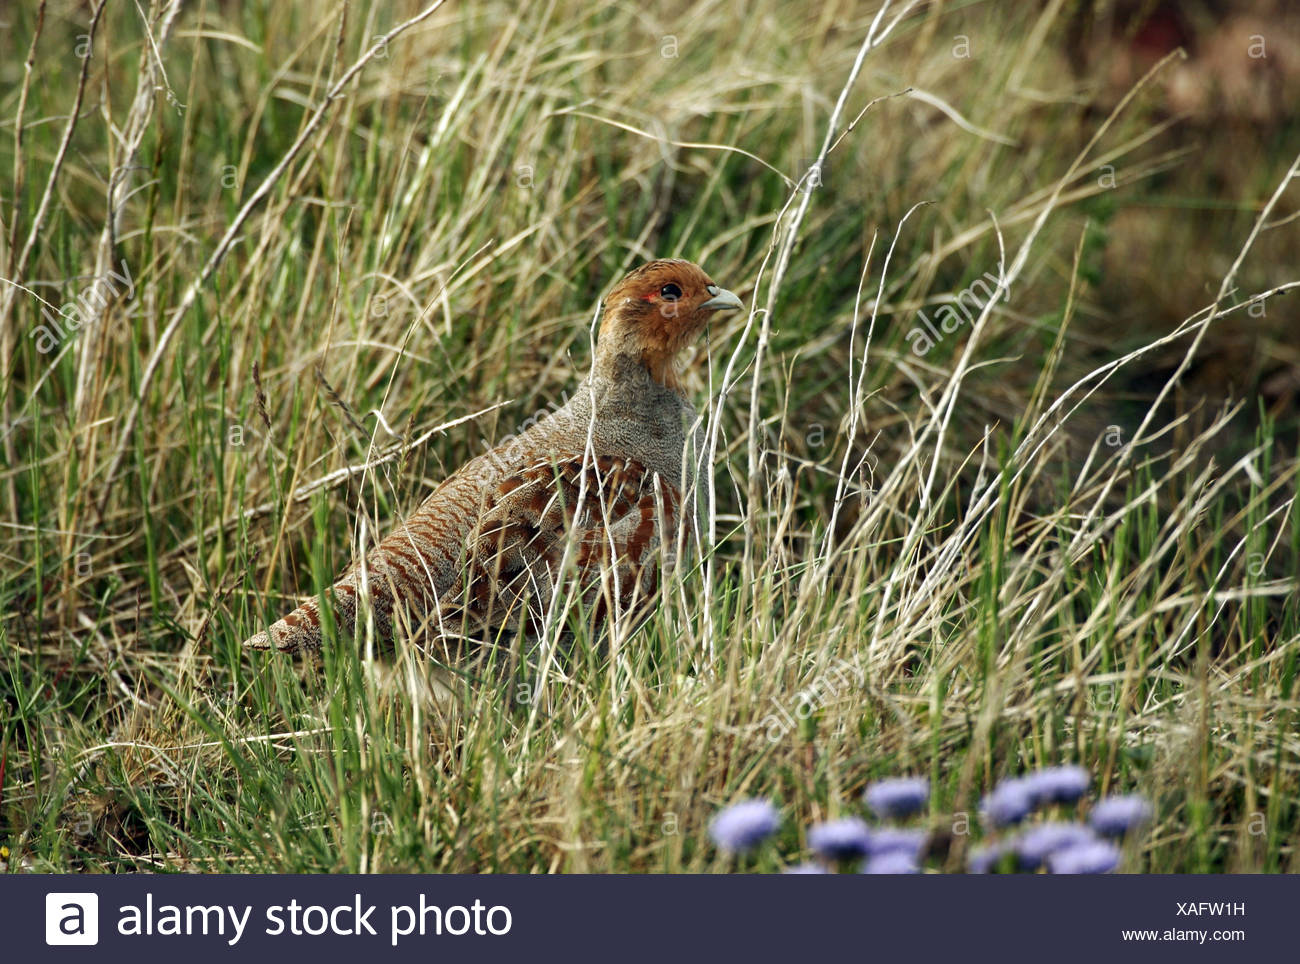 zoology / animals, avian / bird, Phasianidae, Grey Partridge (Perdix perdix), standing in meadow, Oeland, Sweden, distribution: Europe, Asia, Additional-Rights-Clearance-Info-Not-Available - Stock Image